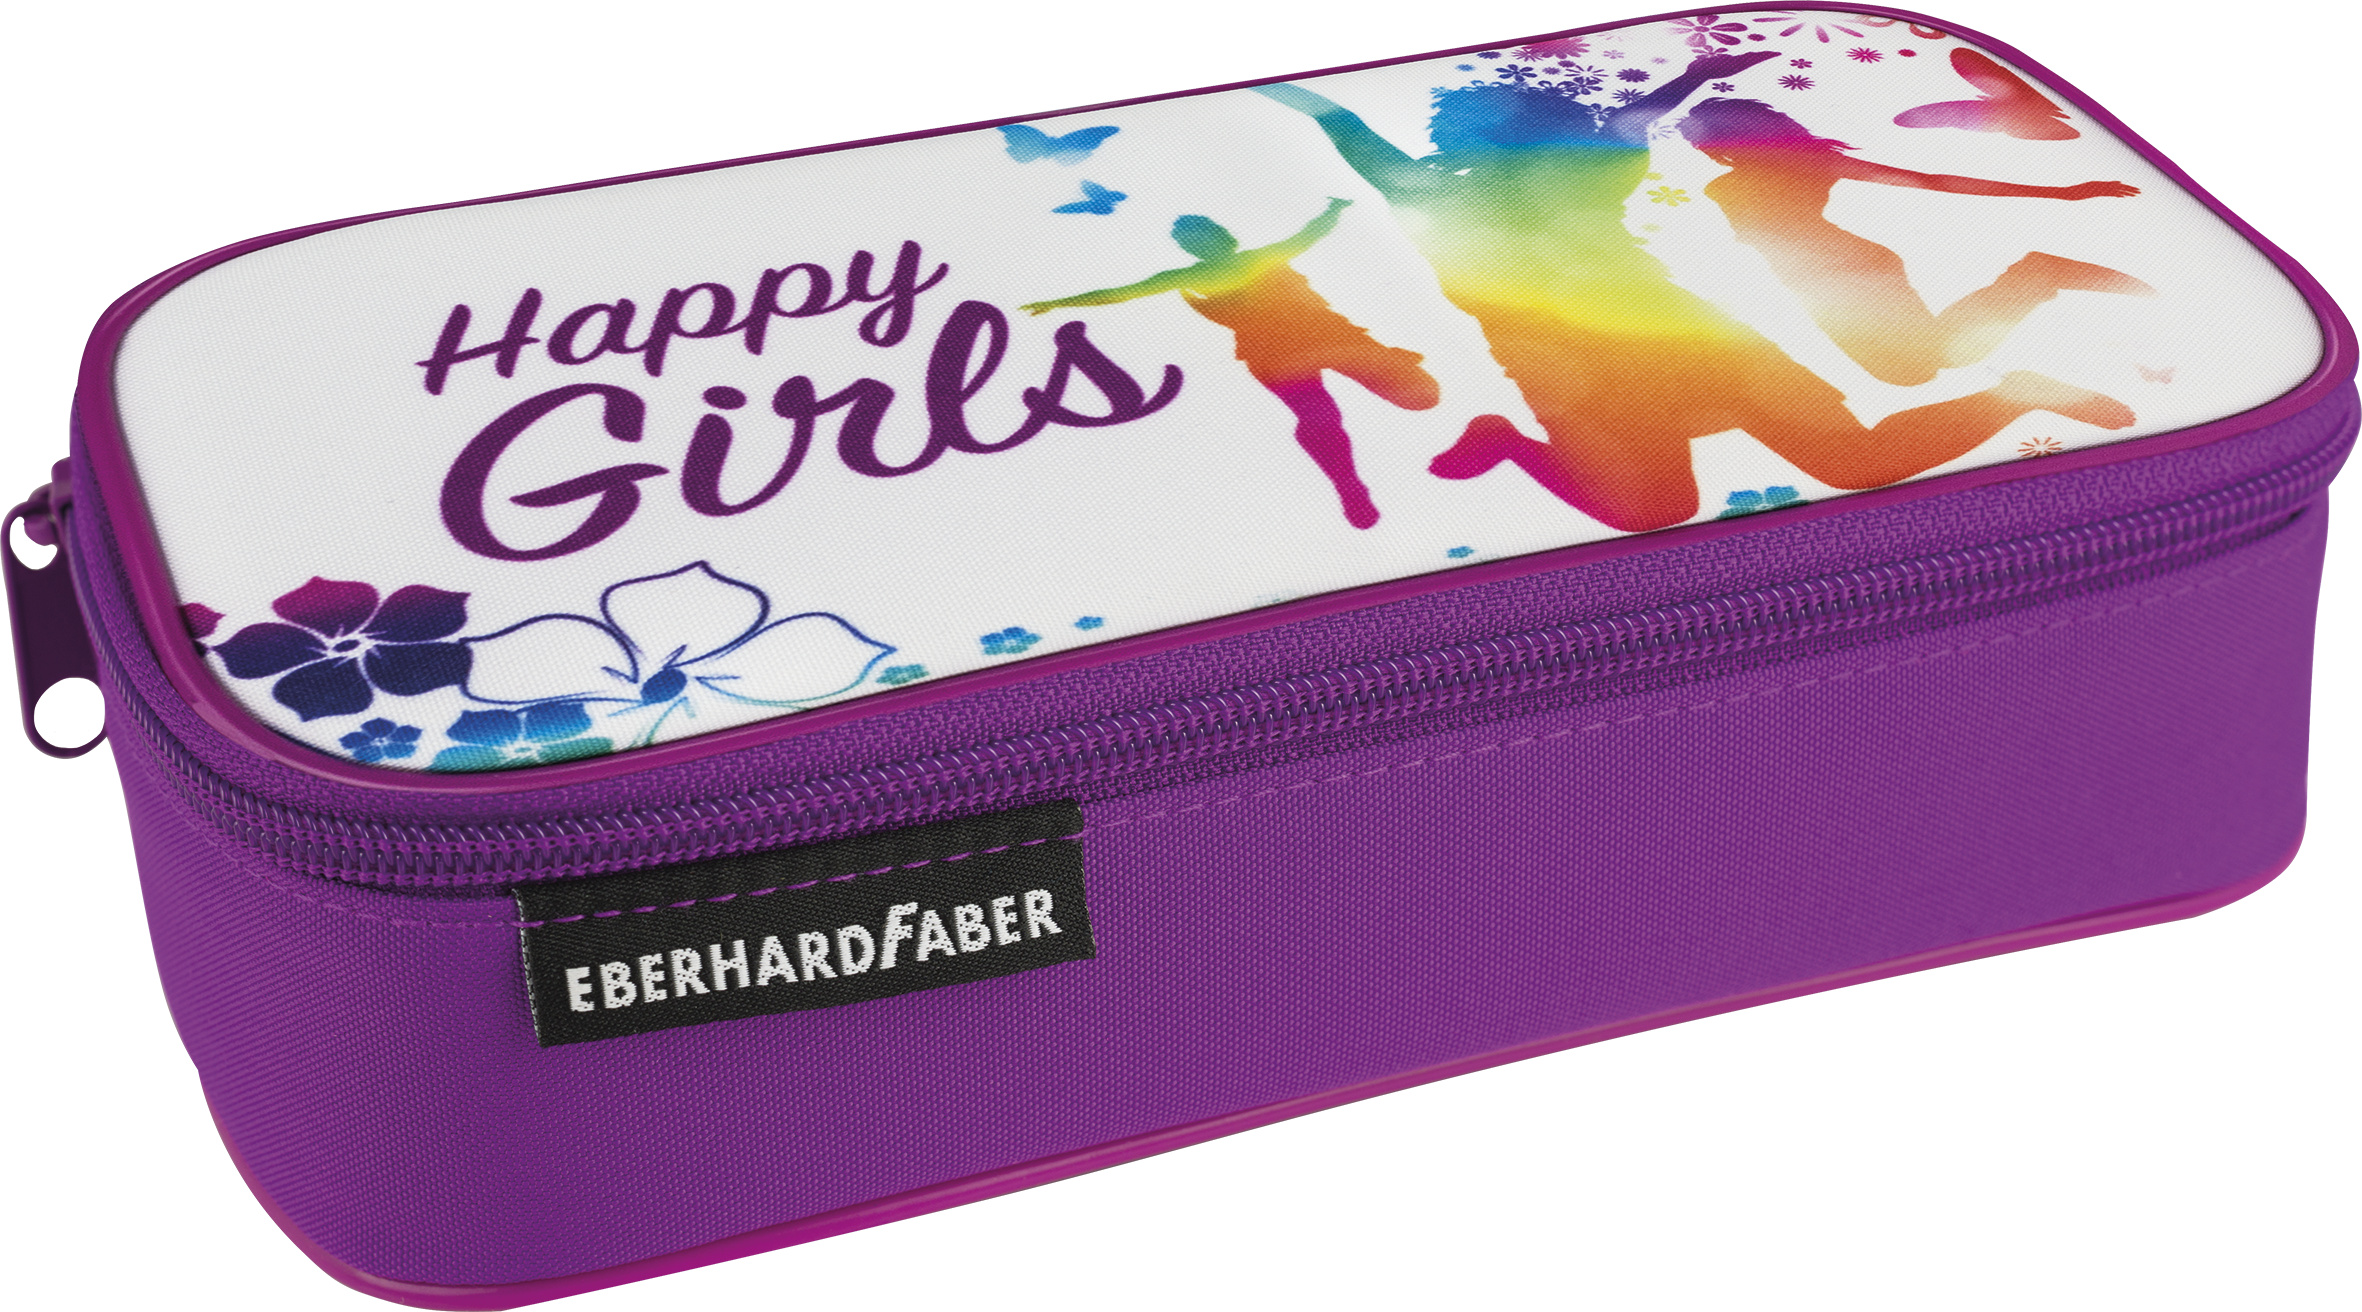 EberhardFaber Jumbo Schlamperbox Happy Girls